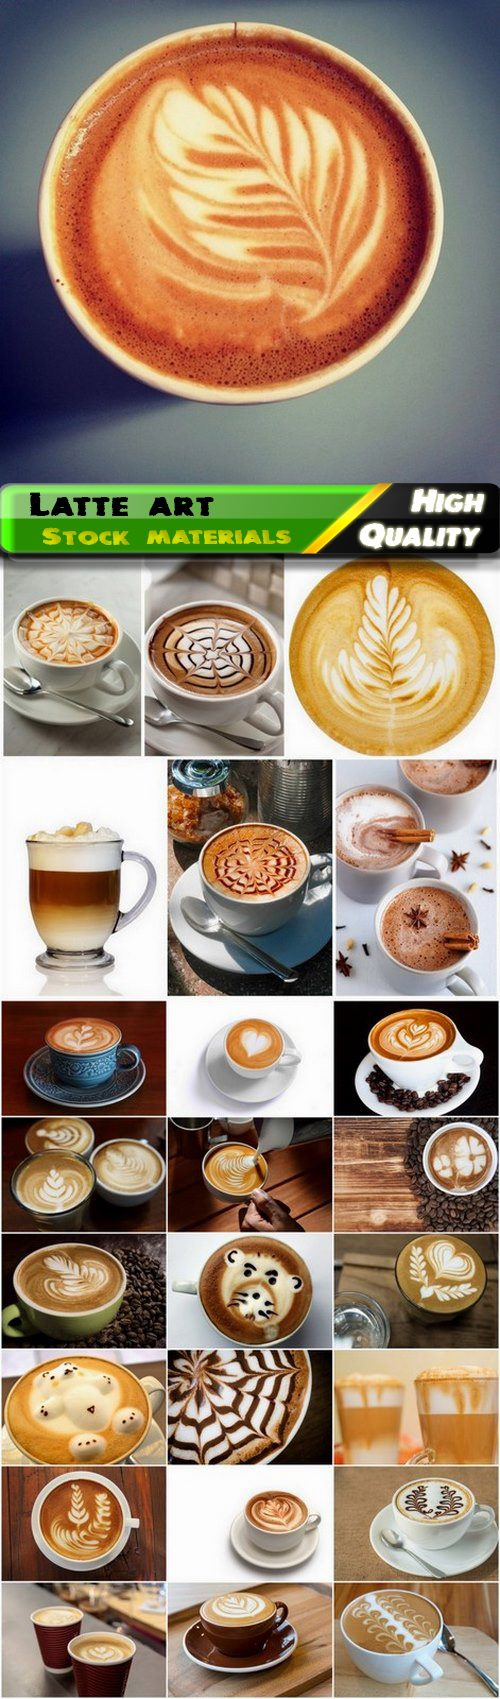 Coffee with milk and latte art - 25 HQ Jpg